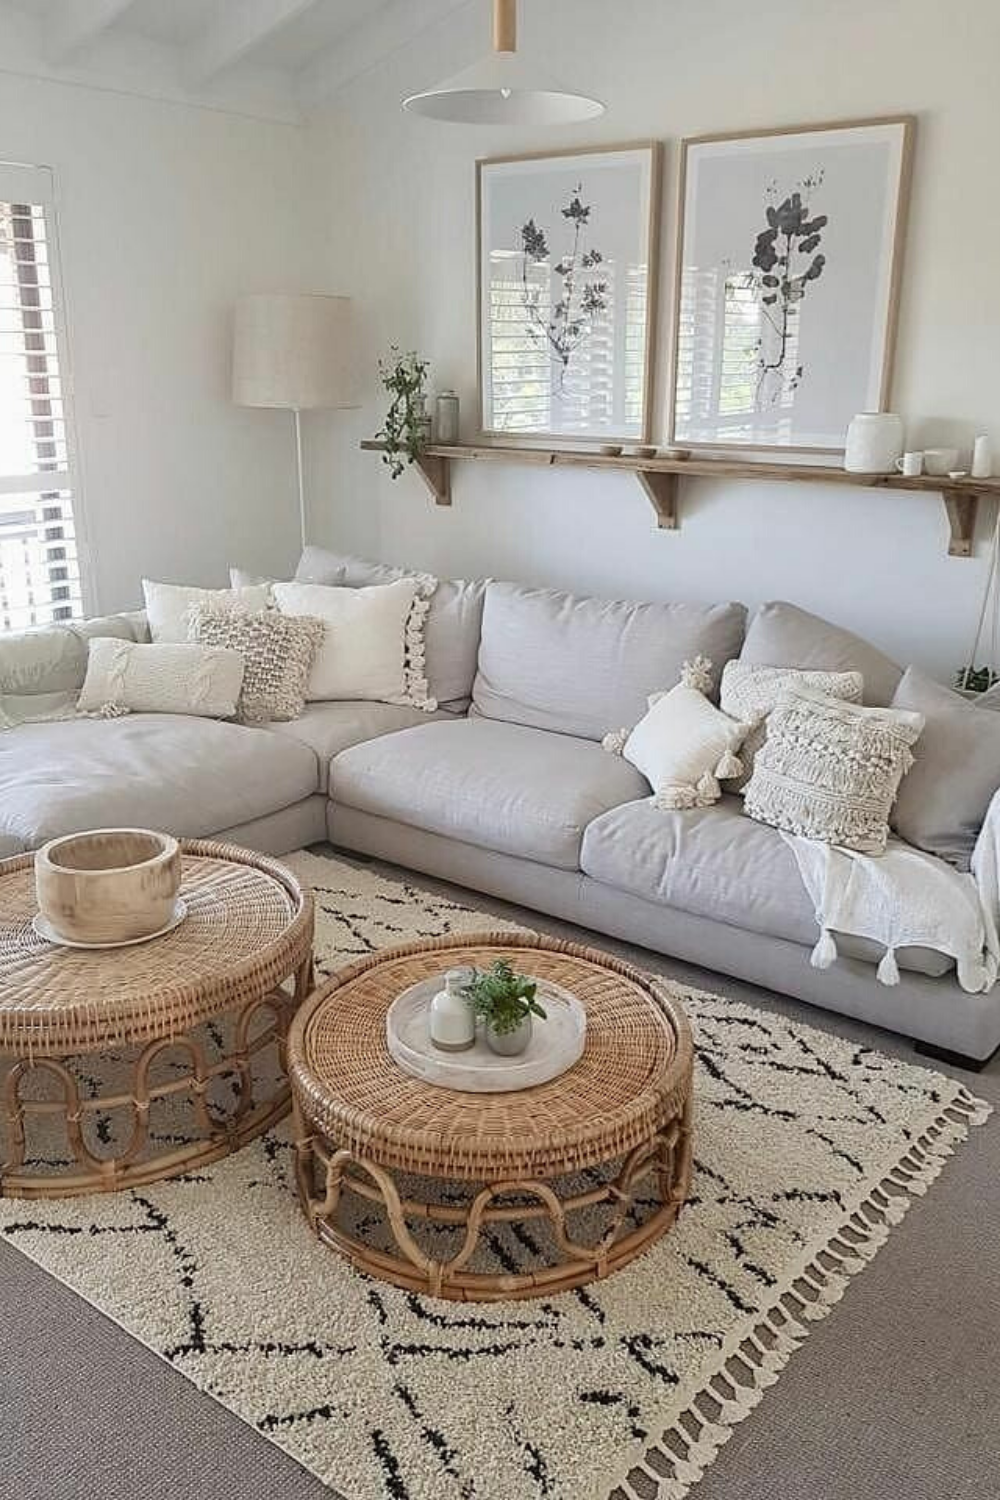 How to cozy and fun living room? just looking a picture is not enough, visit my website to see more about cozy living room ideas... #livingroom #livingroomdecor #livingroomideas #livingroomfurniture #livingroomdesigns #interiordesign #interior #interiorlivingroomideas #interiordesignideas